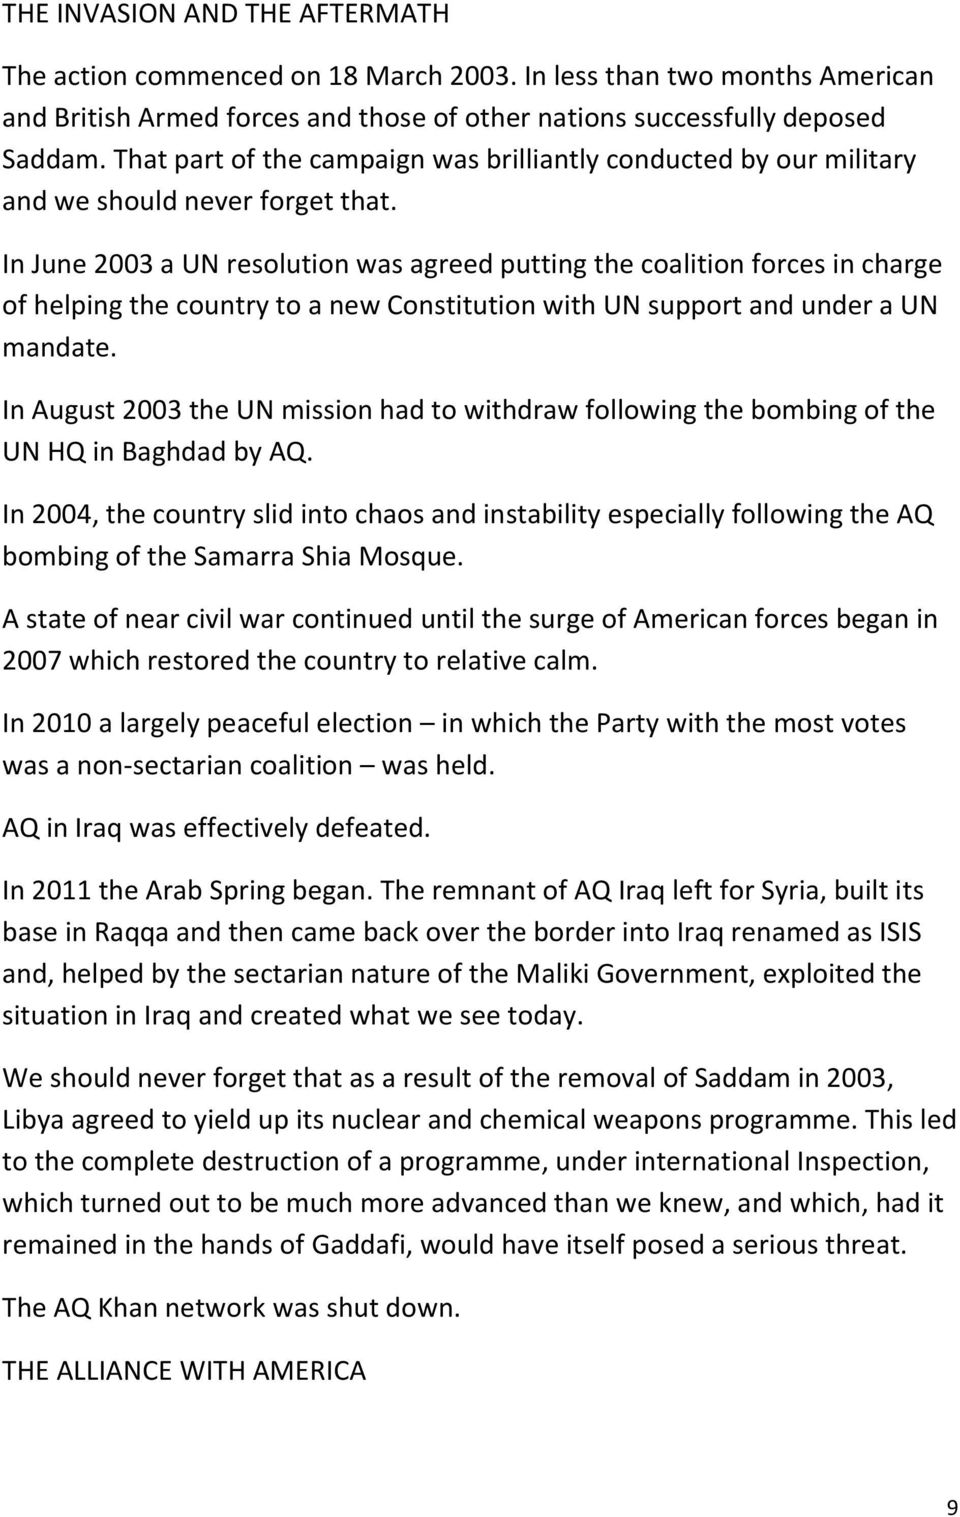 In June 2003 a UN resolution was agreed putting the coalition forces in charge of helping the country to a new Constitution with UN support and under a UN mandate.